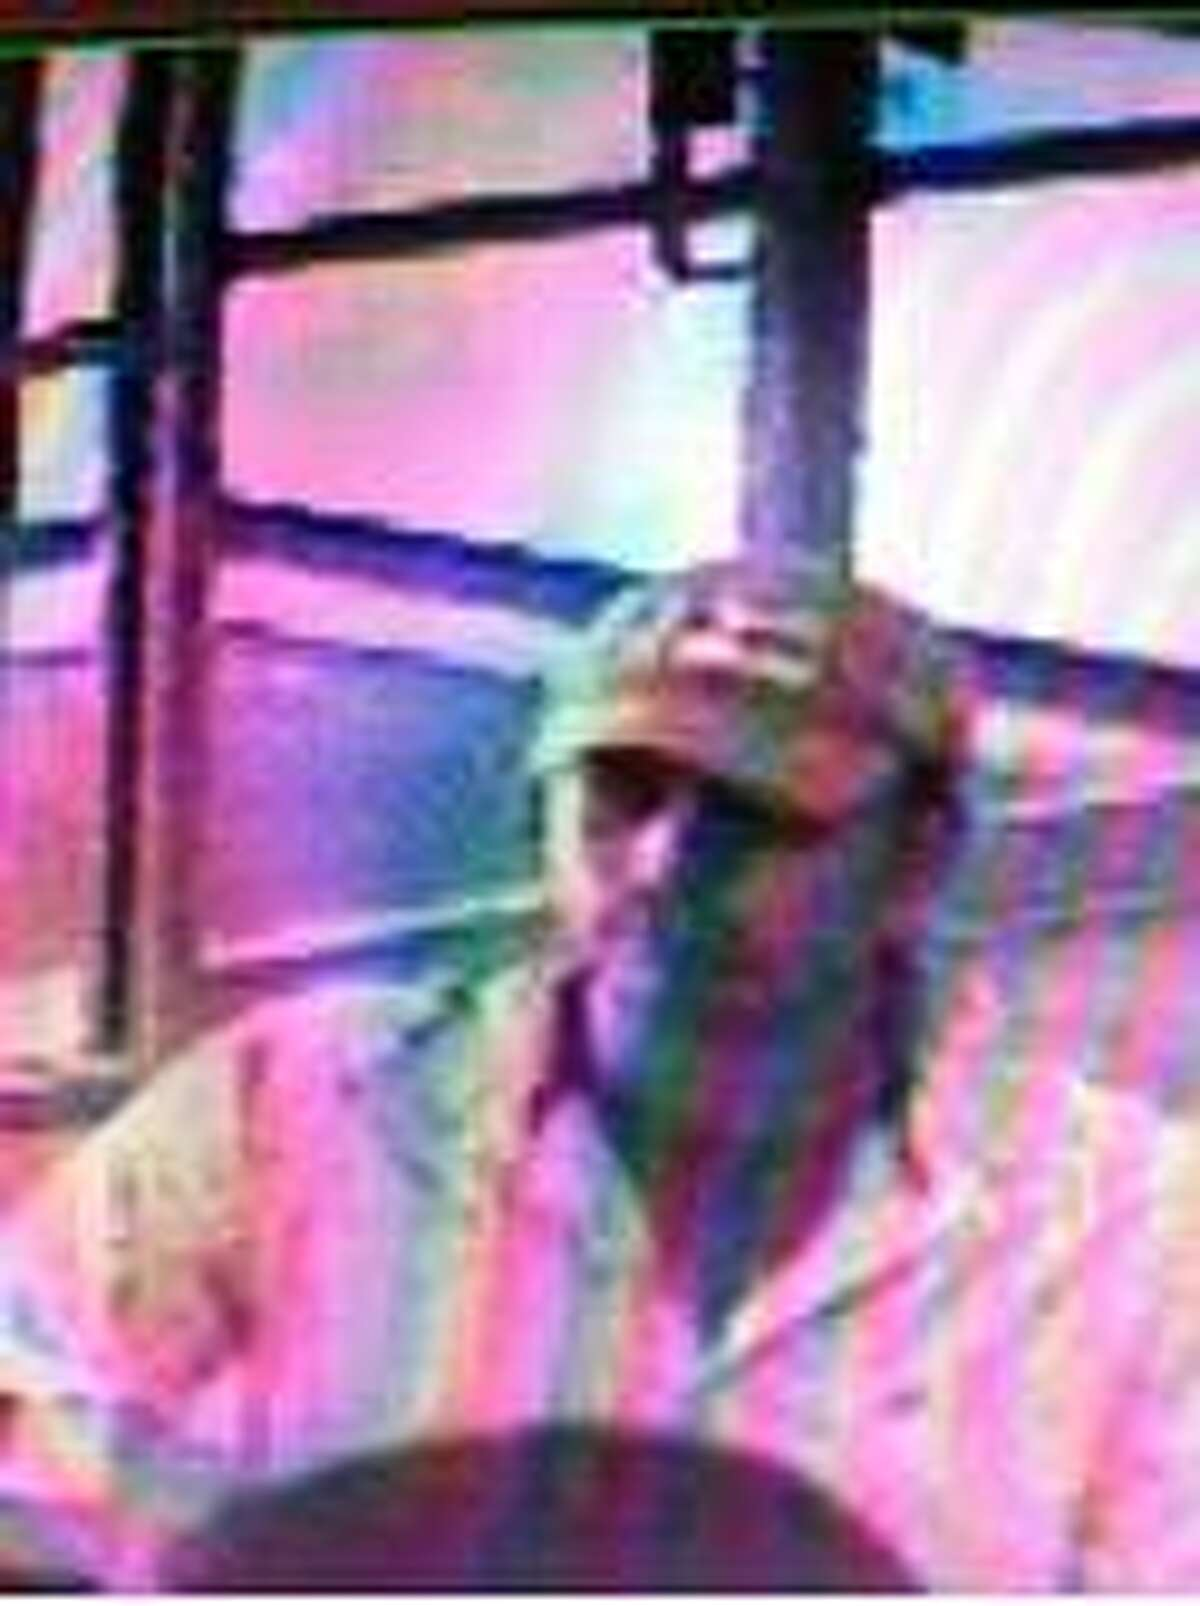 Police are searching for this suspect in connection with a robbery at the San Antonio Federal Credit Union at 7318 Louis Pasteur on Feb. 8.